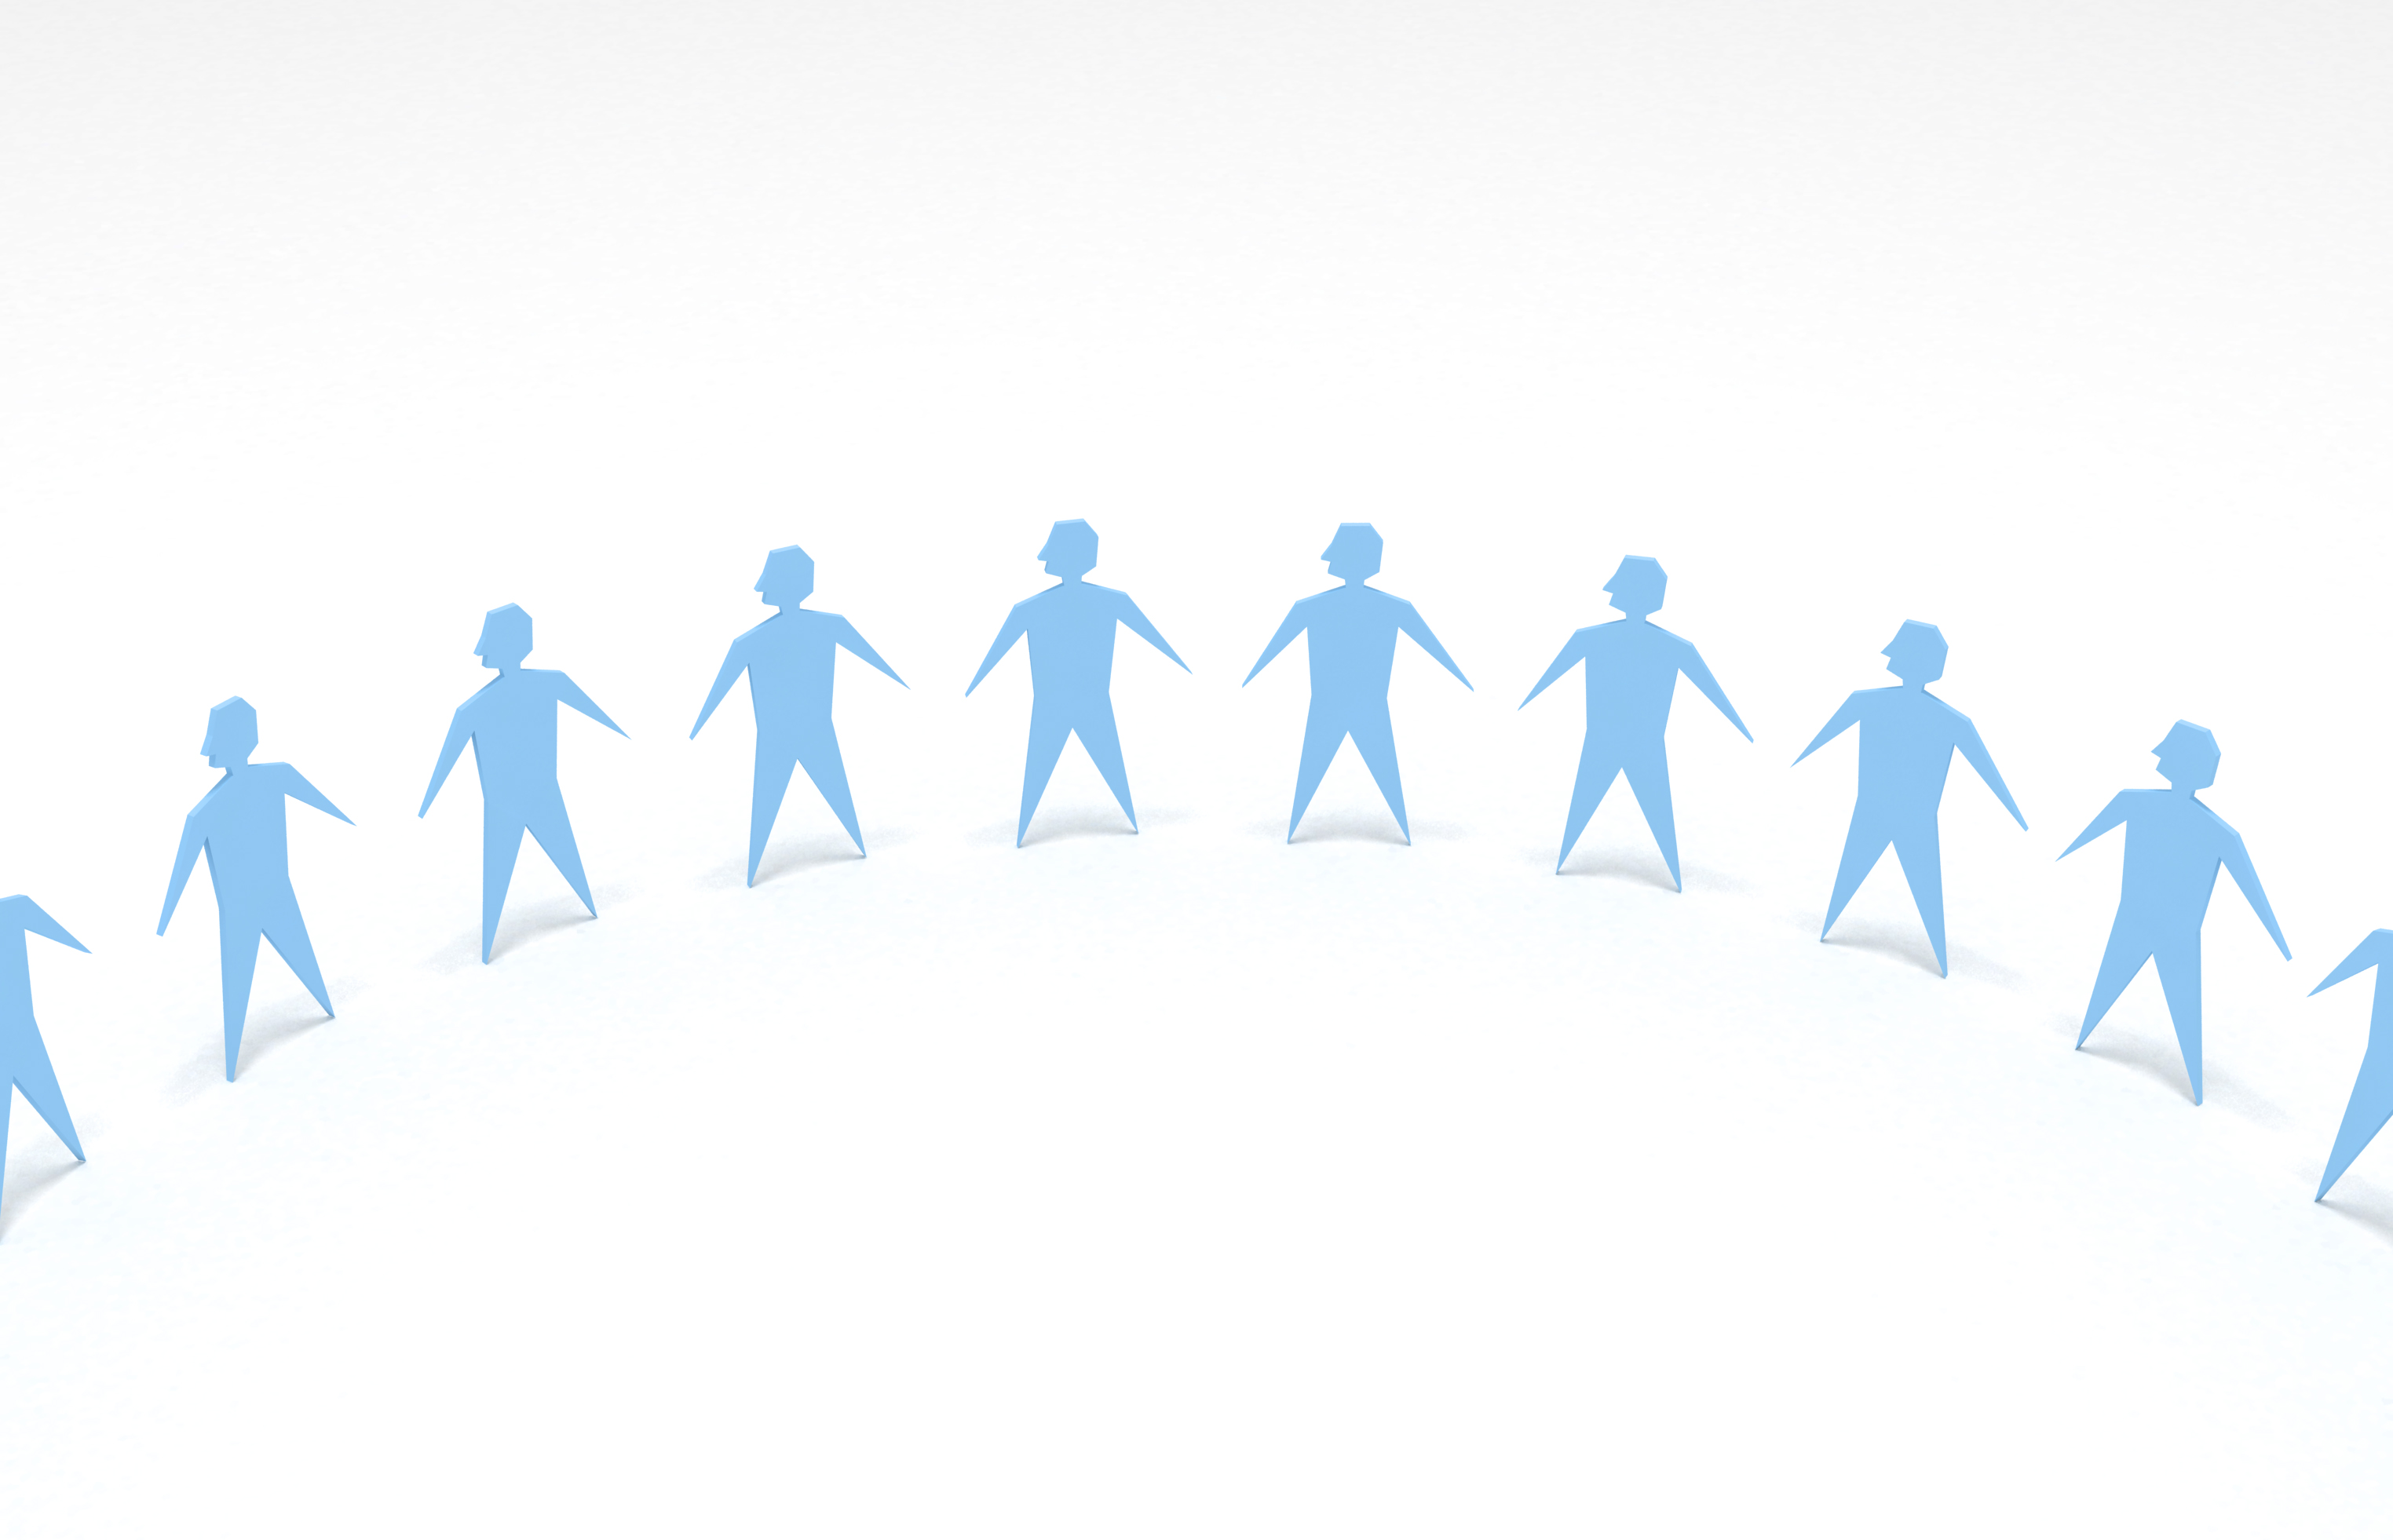 Forming stronger bonds in the community. Picture of several blue figures representing people in a horizontal line.